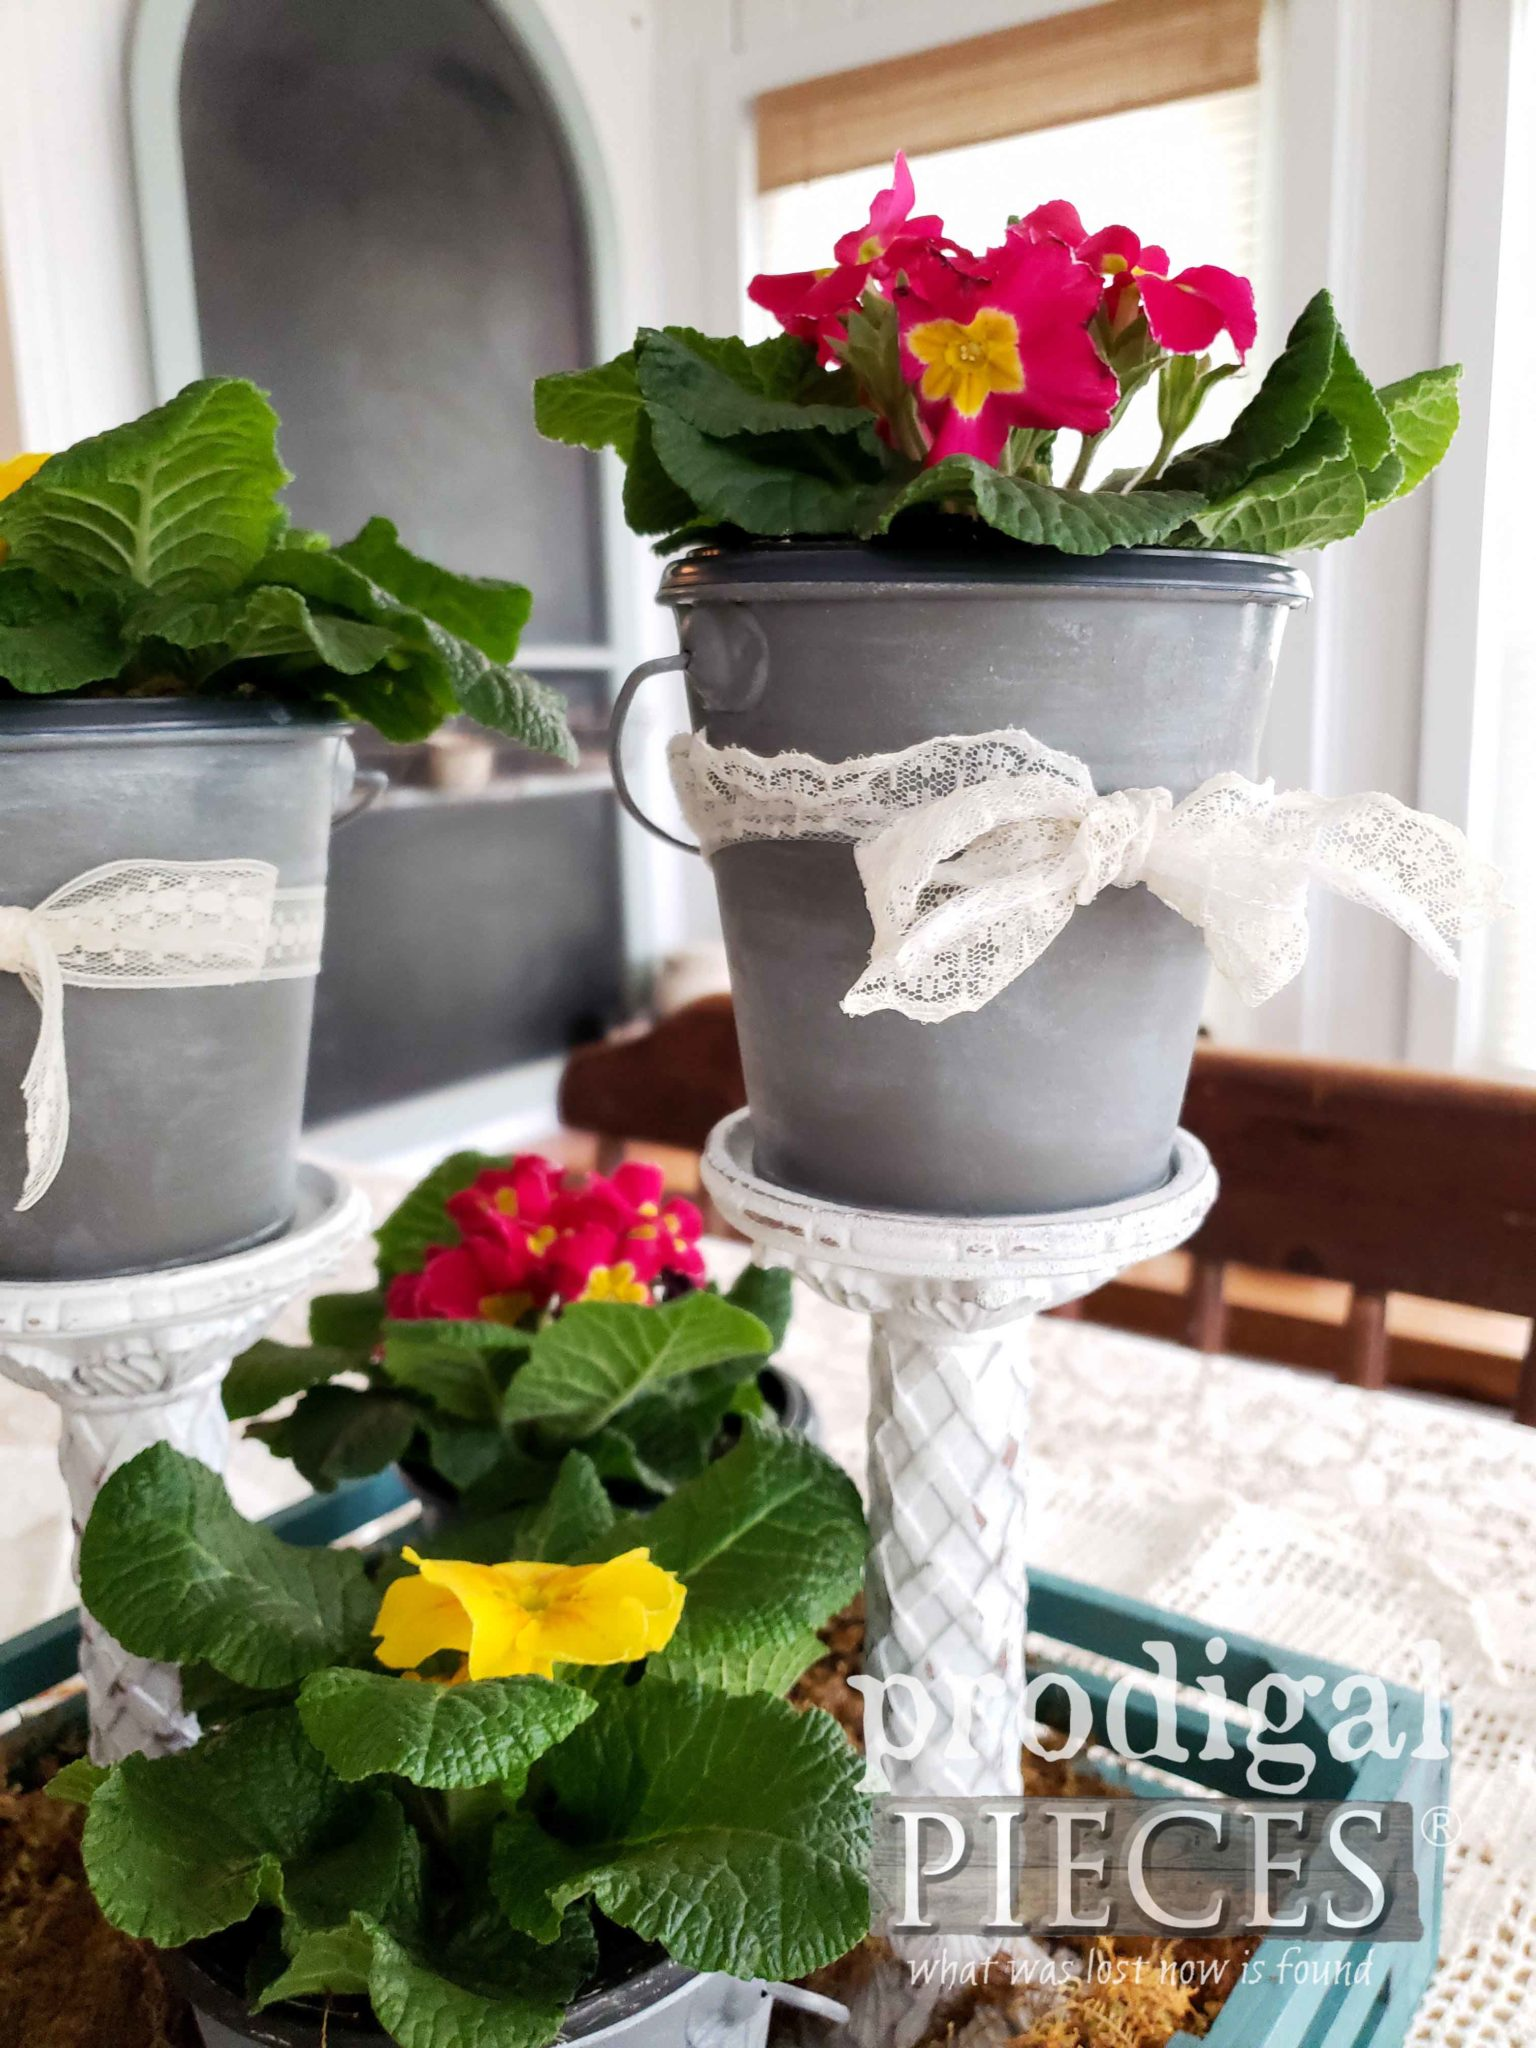 Farmhouse Style Spring Centerpiece by Larissa of Prodigal Pieces | prodigalpieces.com #prodigalpieces #diy #home #farmhouse #homedecor #vintage #homedecorideas